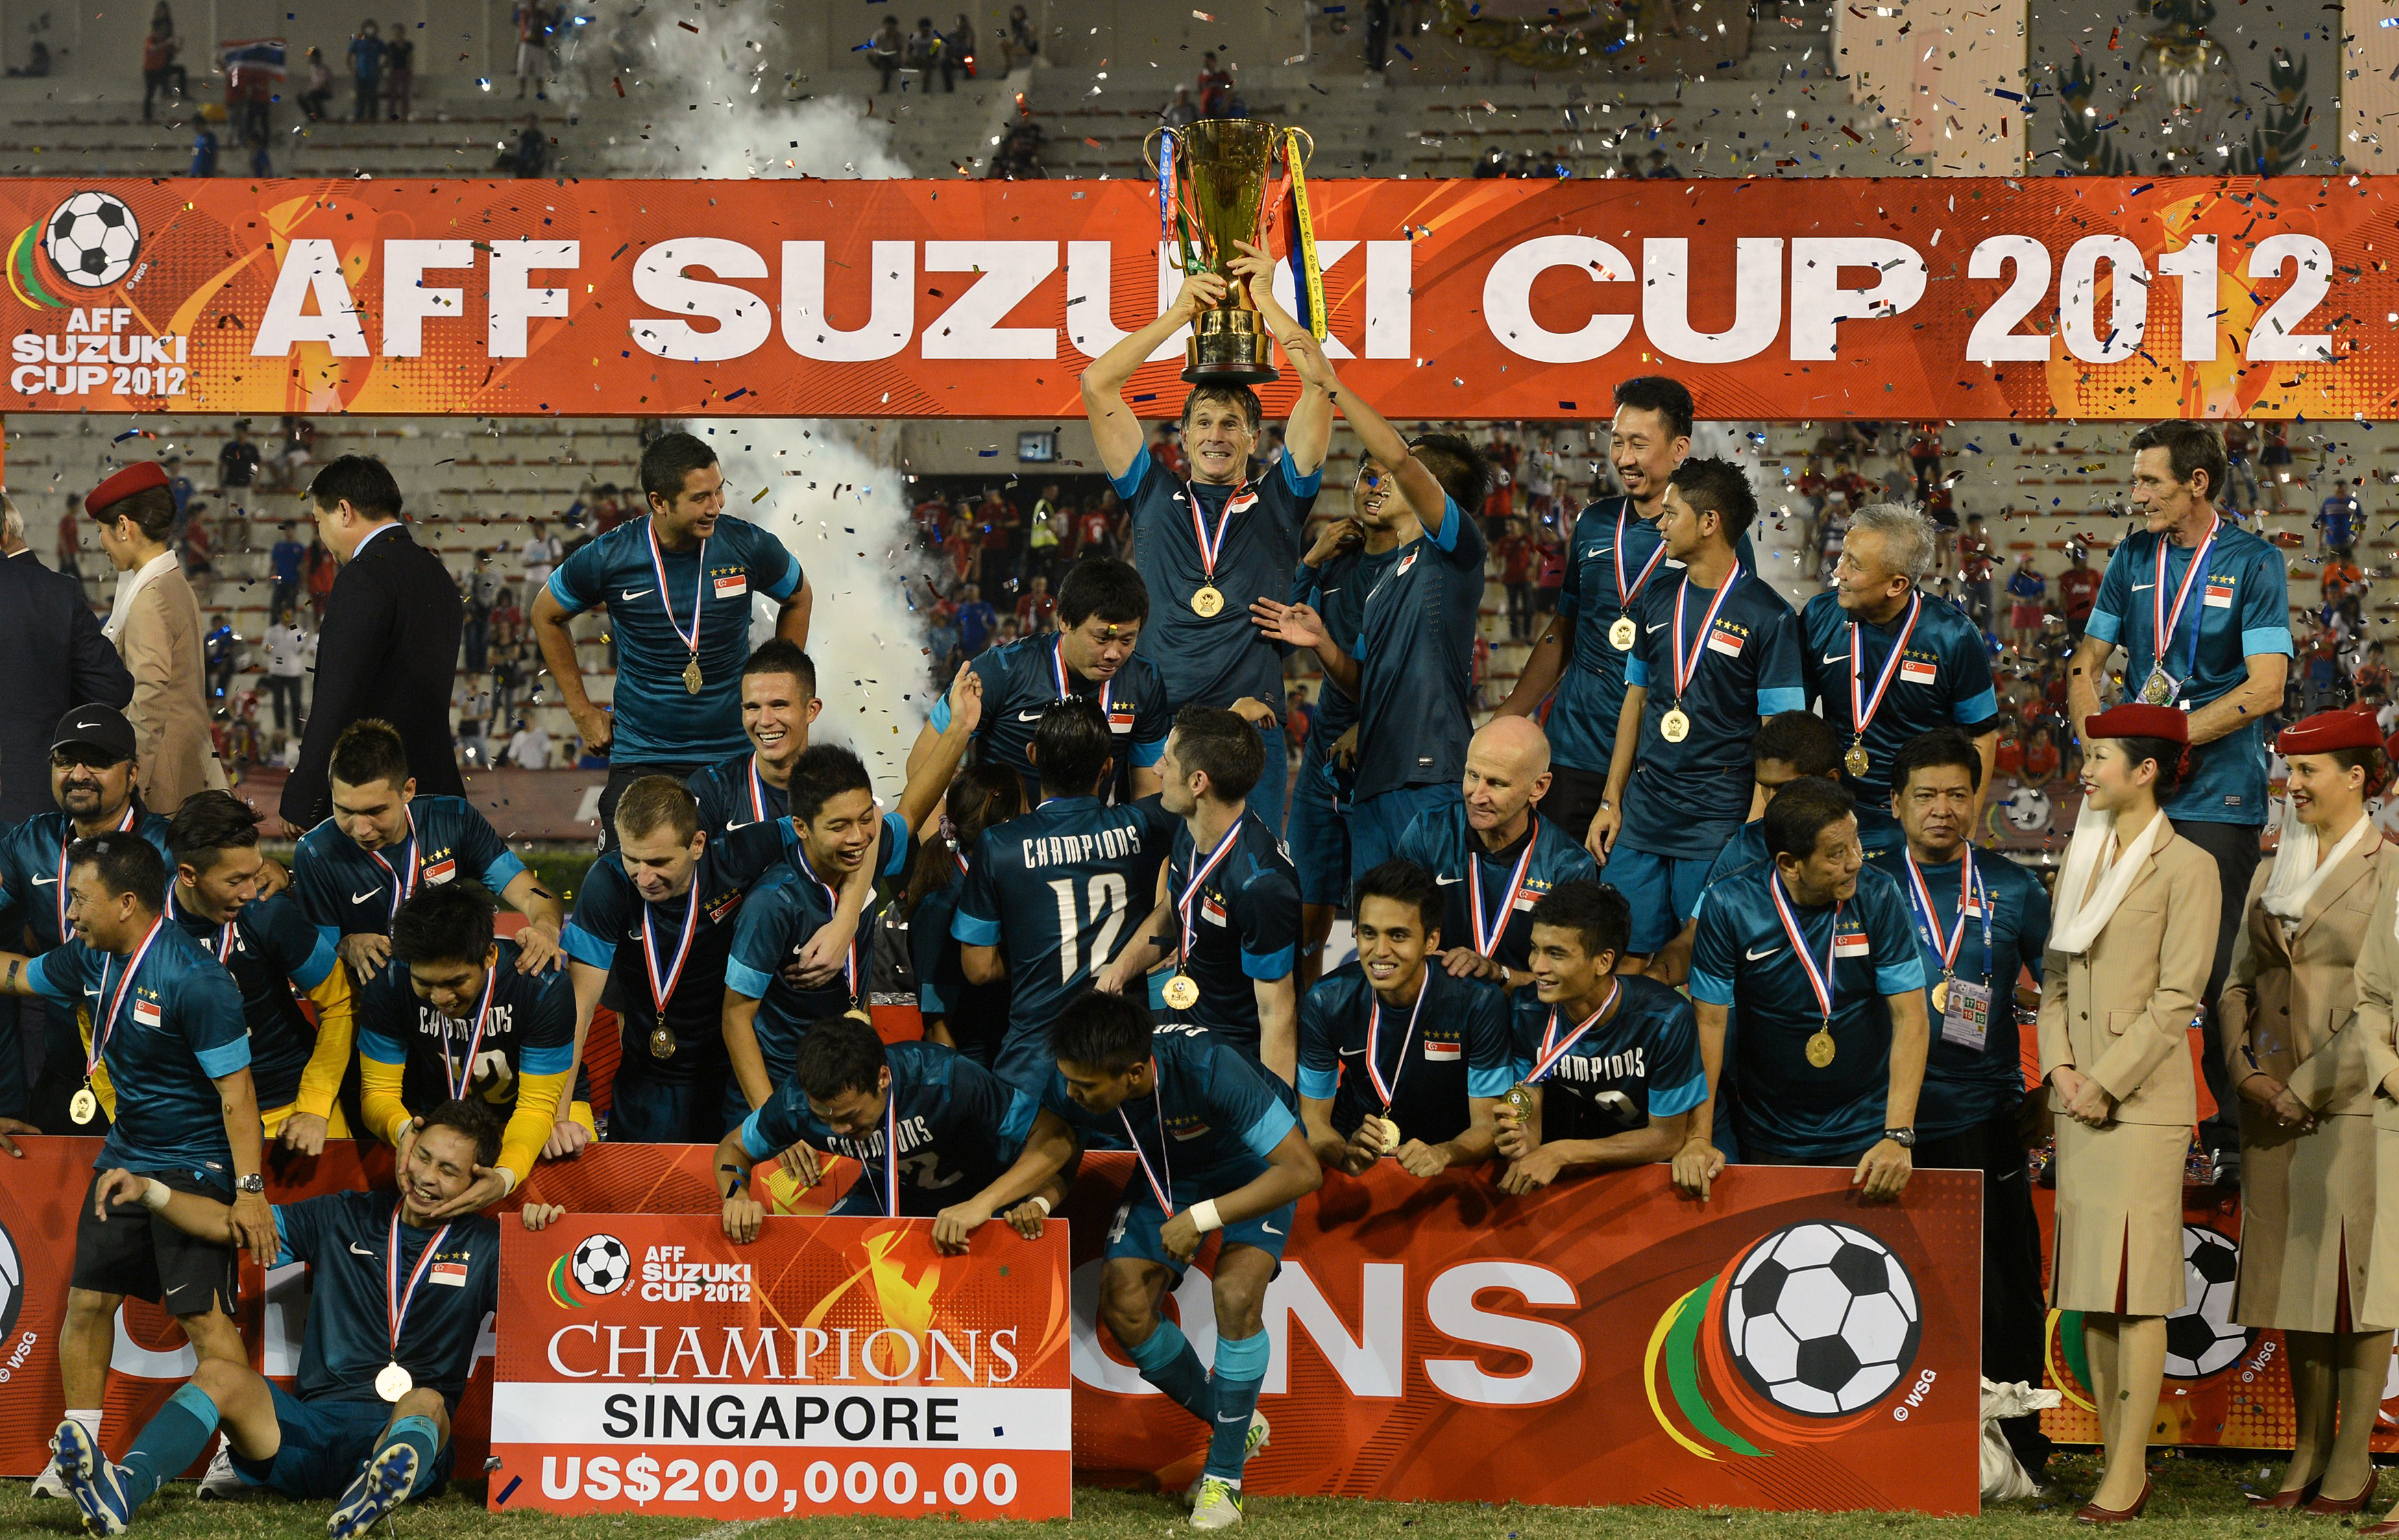 Singapore celebrating their 2012 AFF Cup title